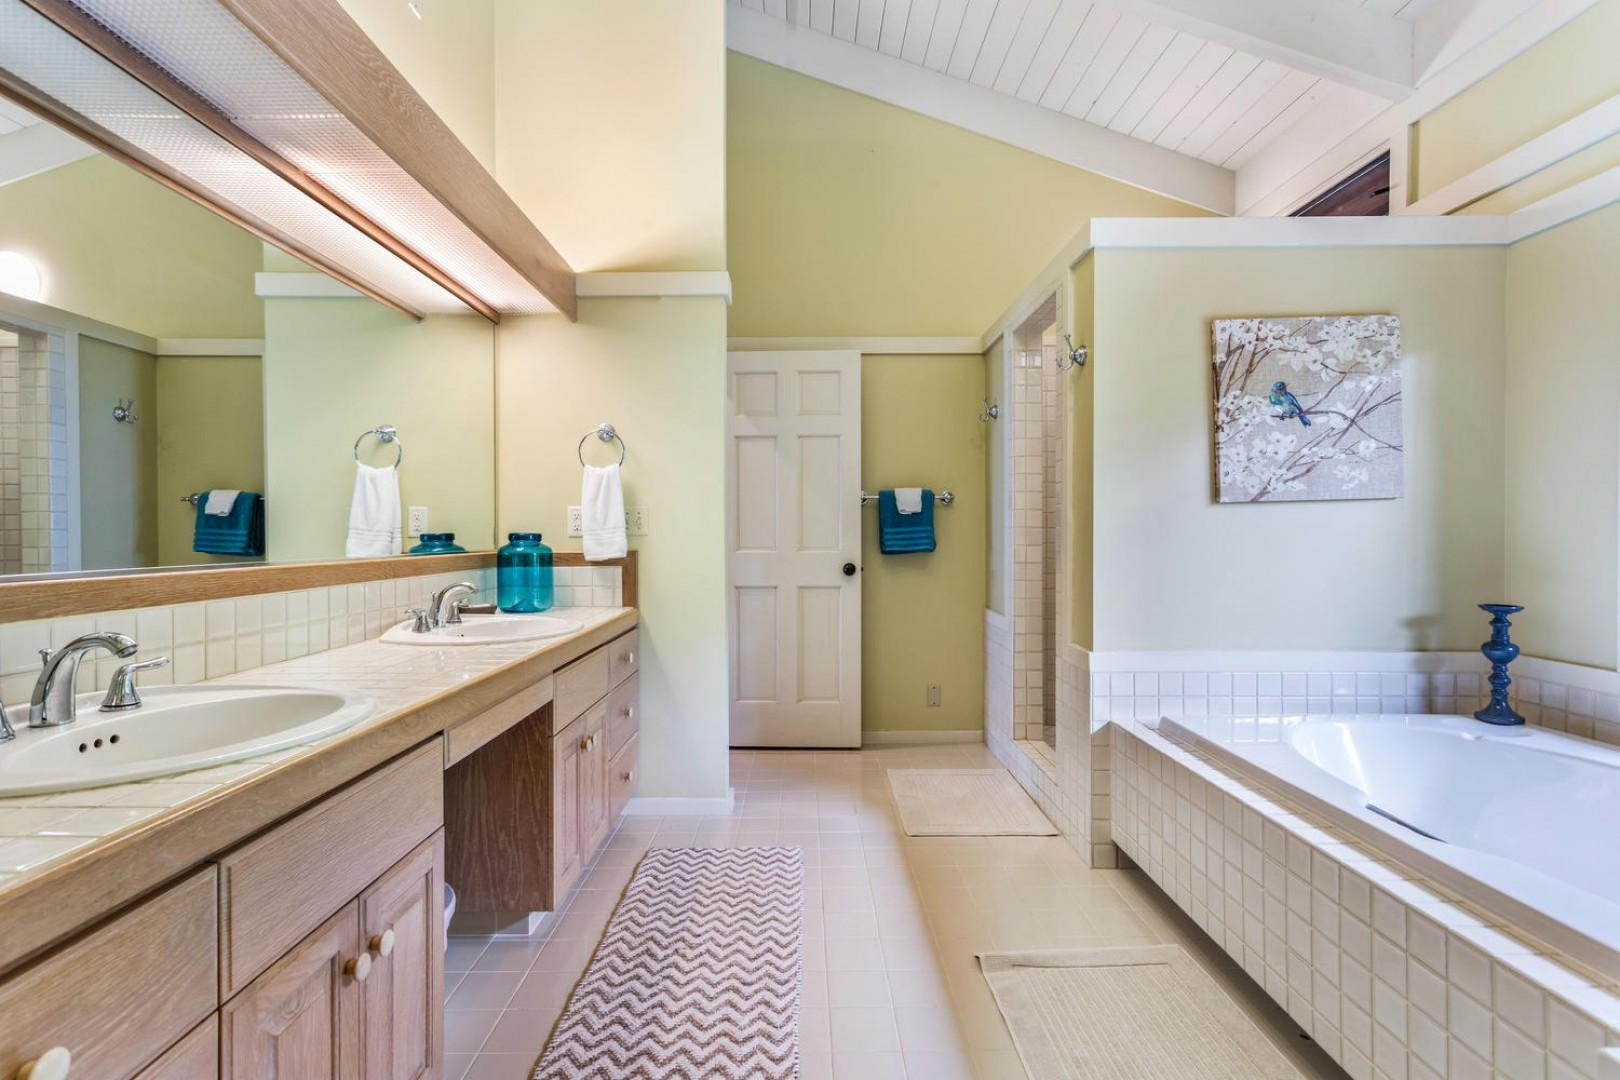 Another view of the master bath.